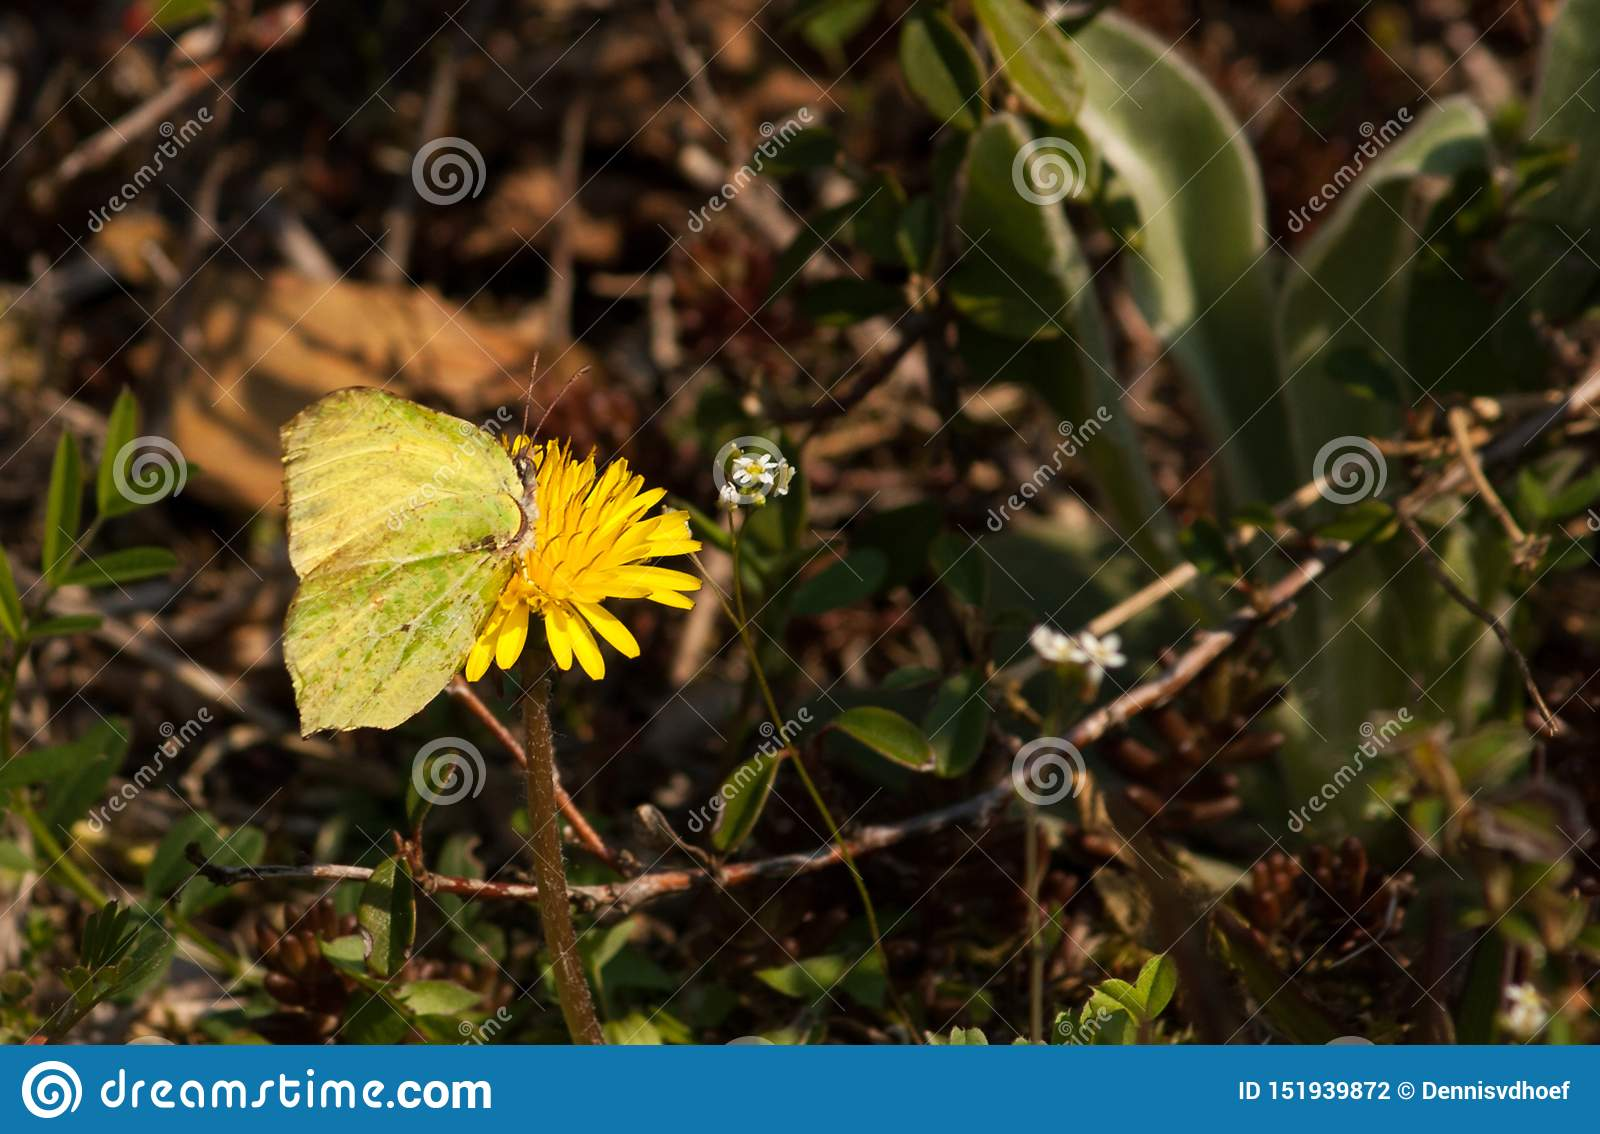 Green/yellow butterfly on a yellow flower.